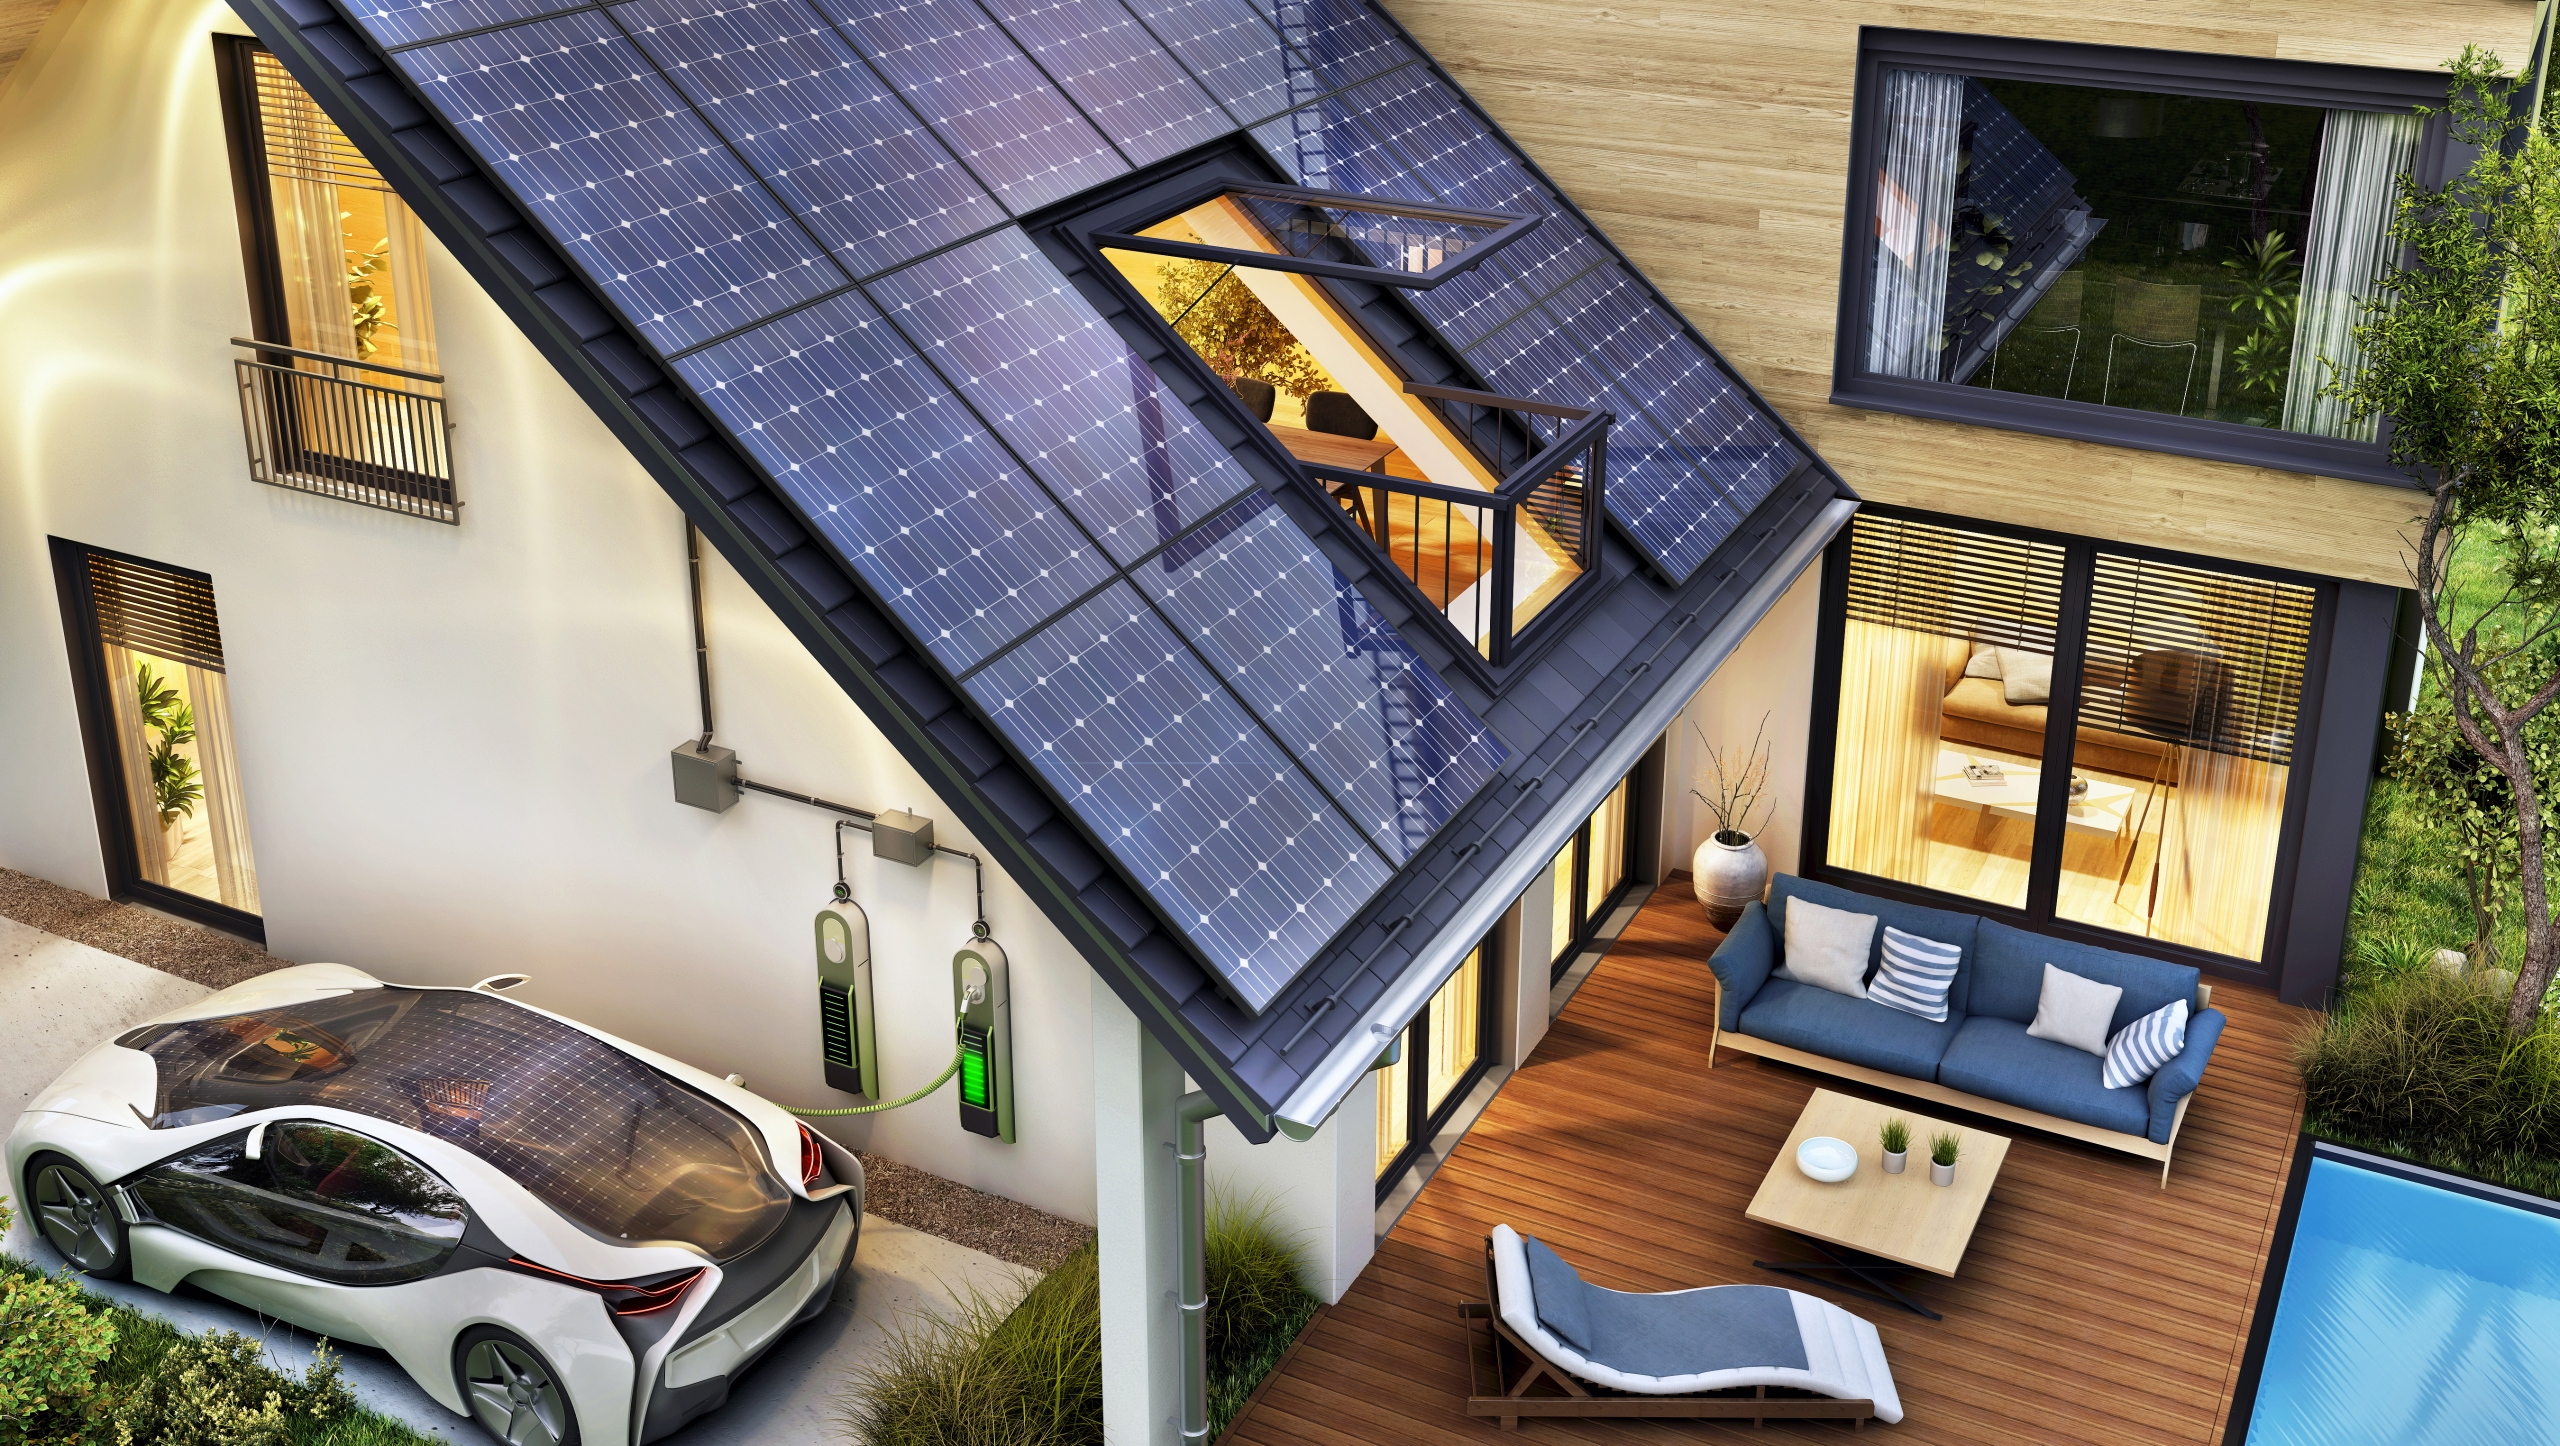 Image shows a modern home with solar panels on roof and electric car charging. Imperia Engineering Partners & ReWire Energy can help improve energy efficiency by reducing energy waste and maximizing energy value.